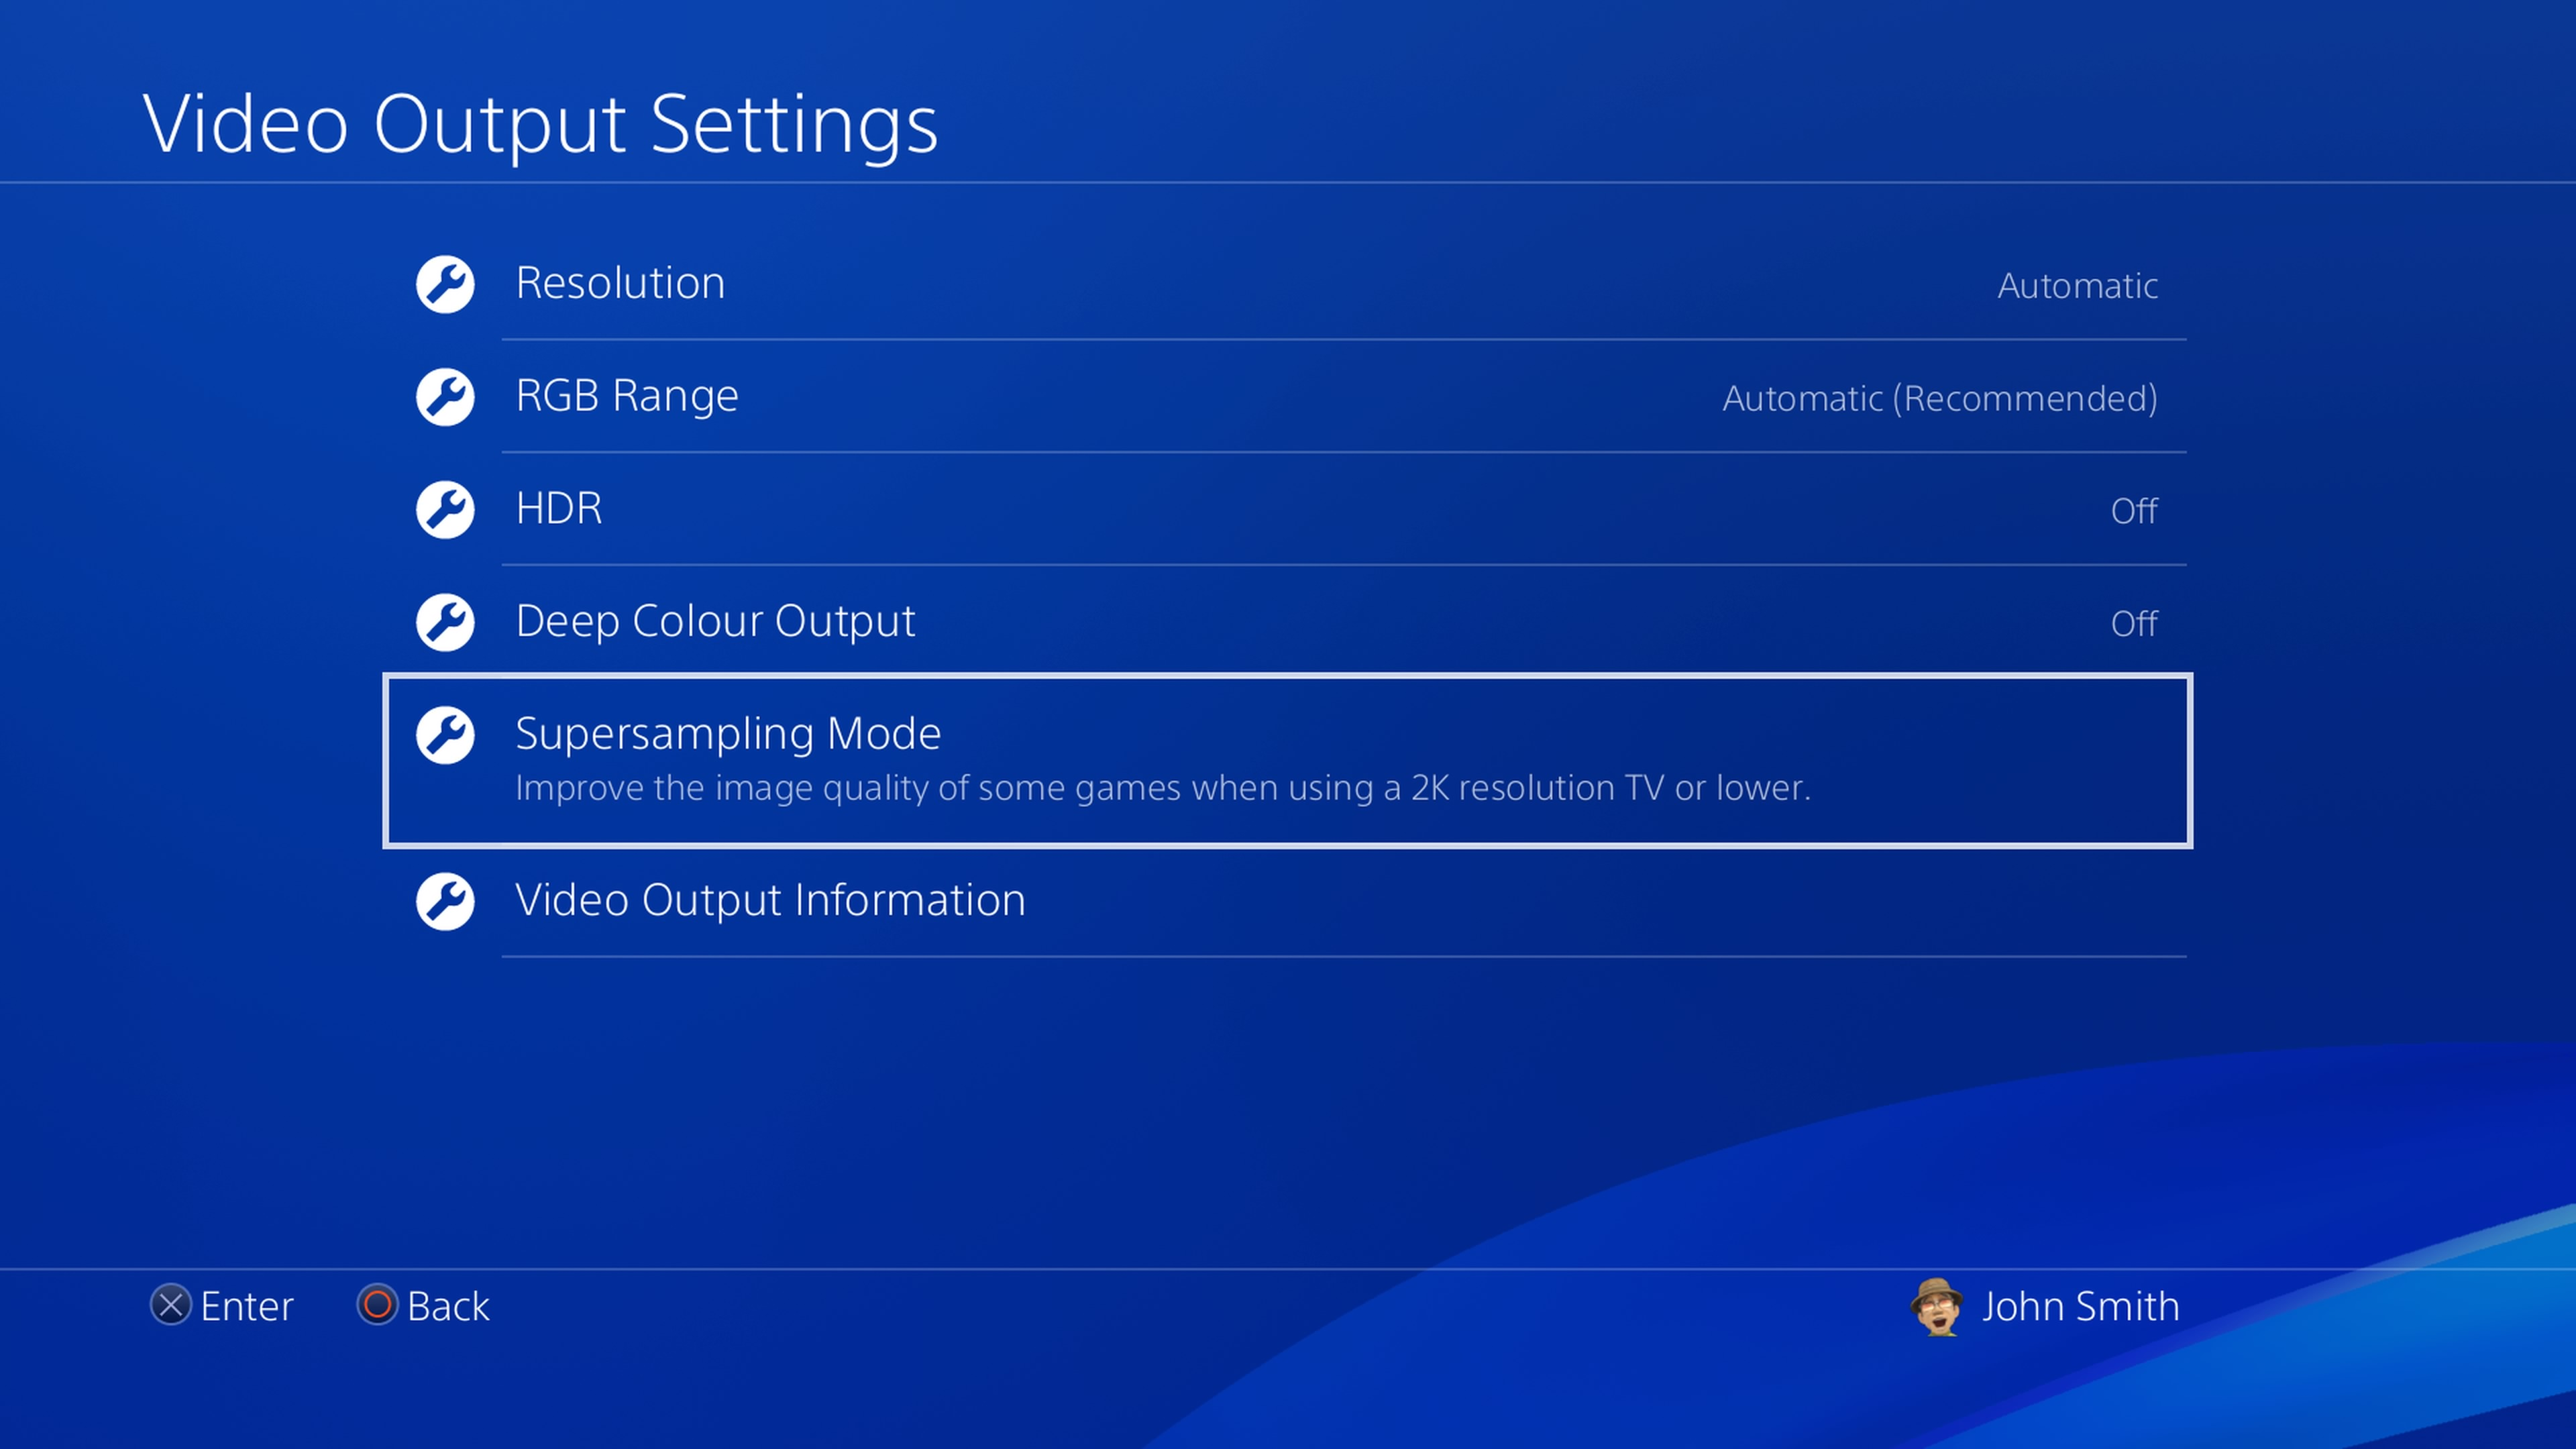 ps4 remote play apk android 5.1